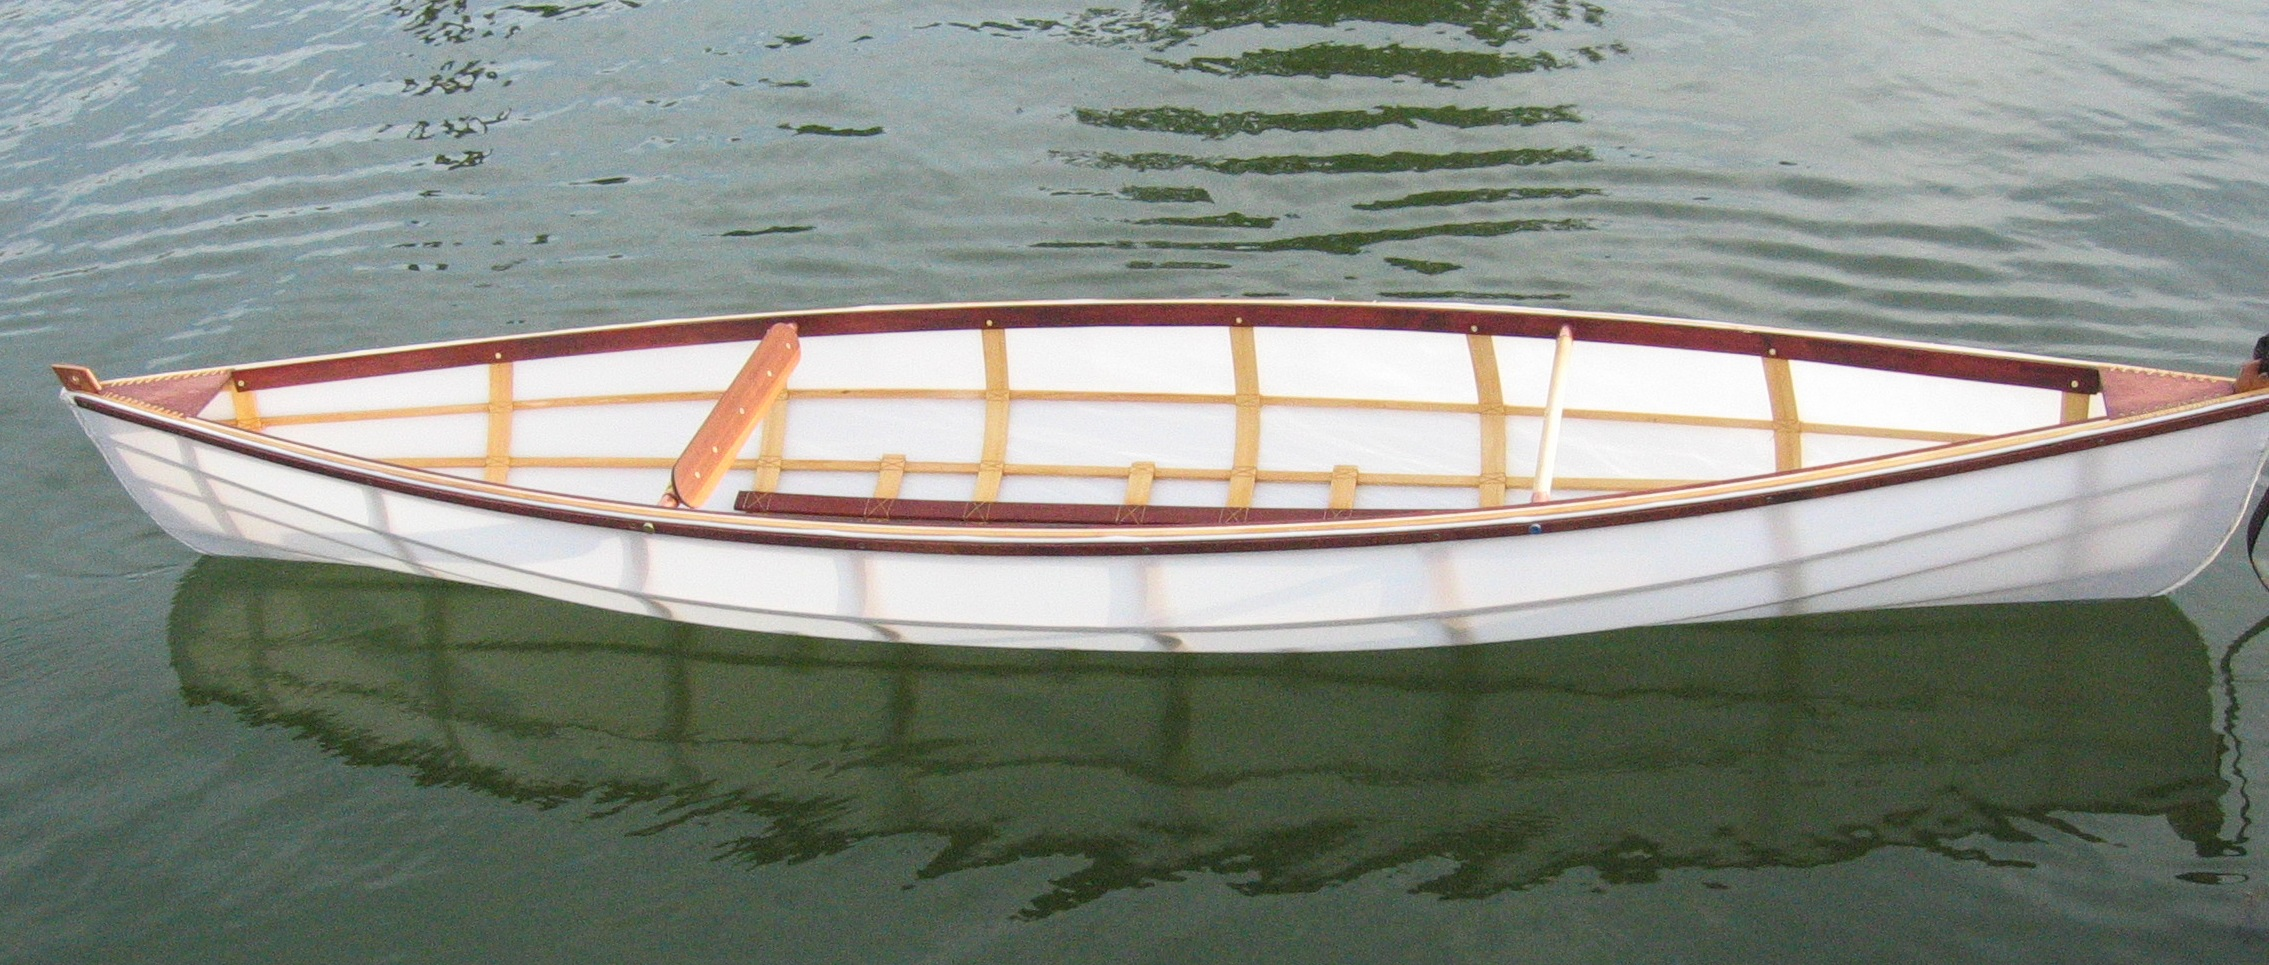 skin on frame Kayak Kits